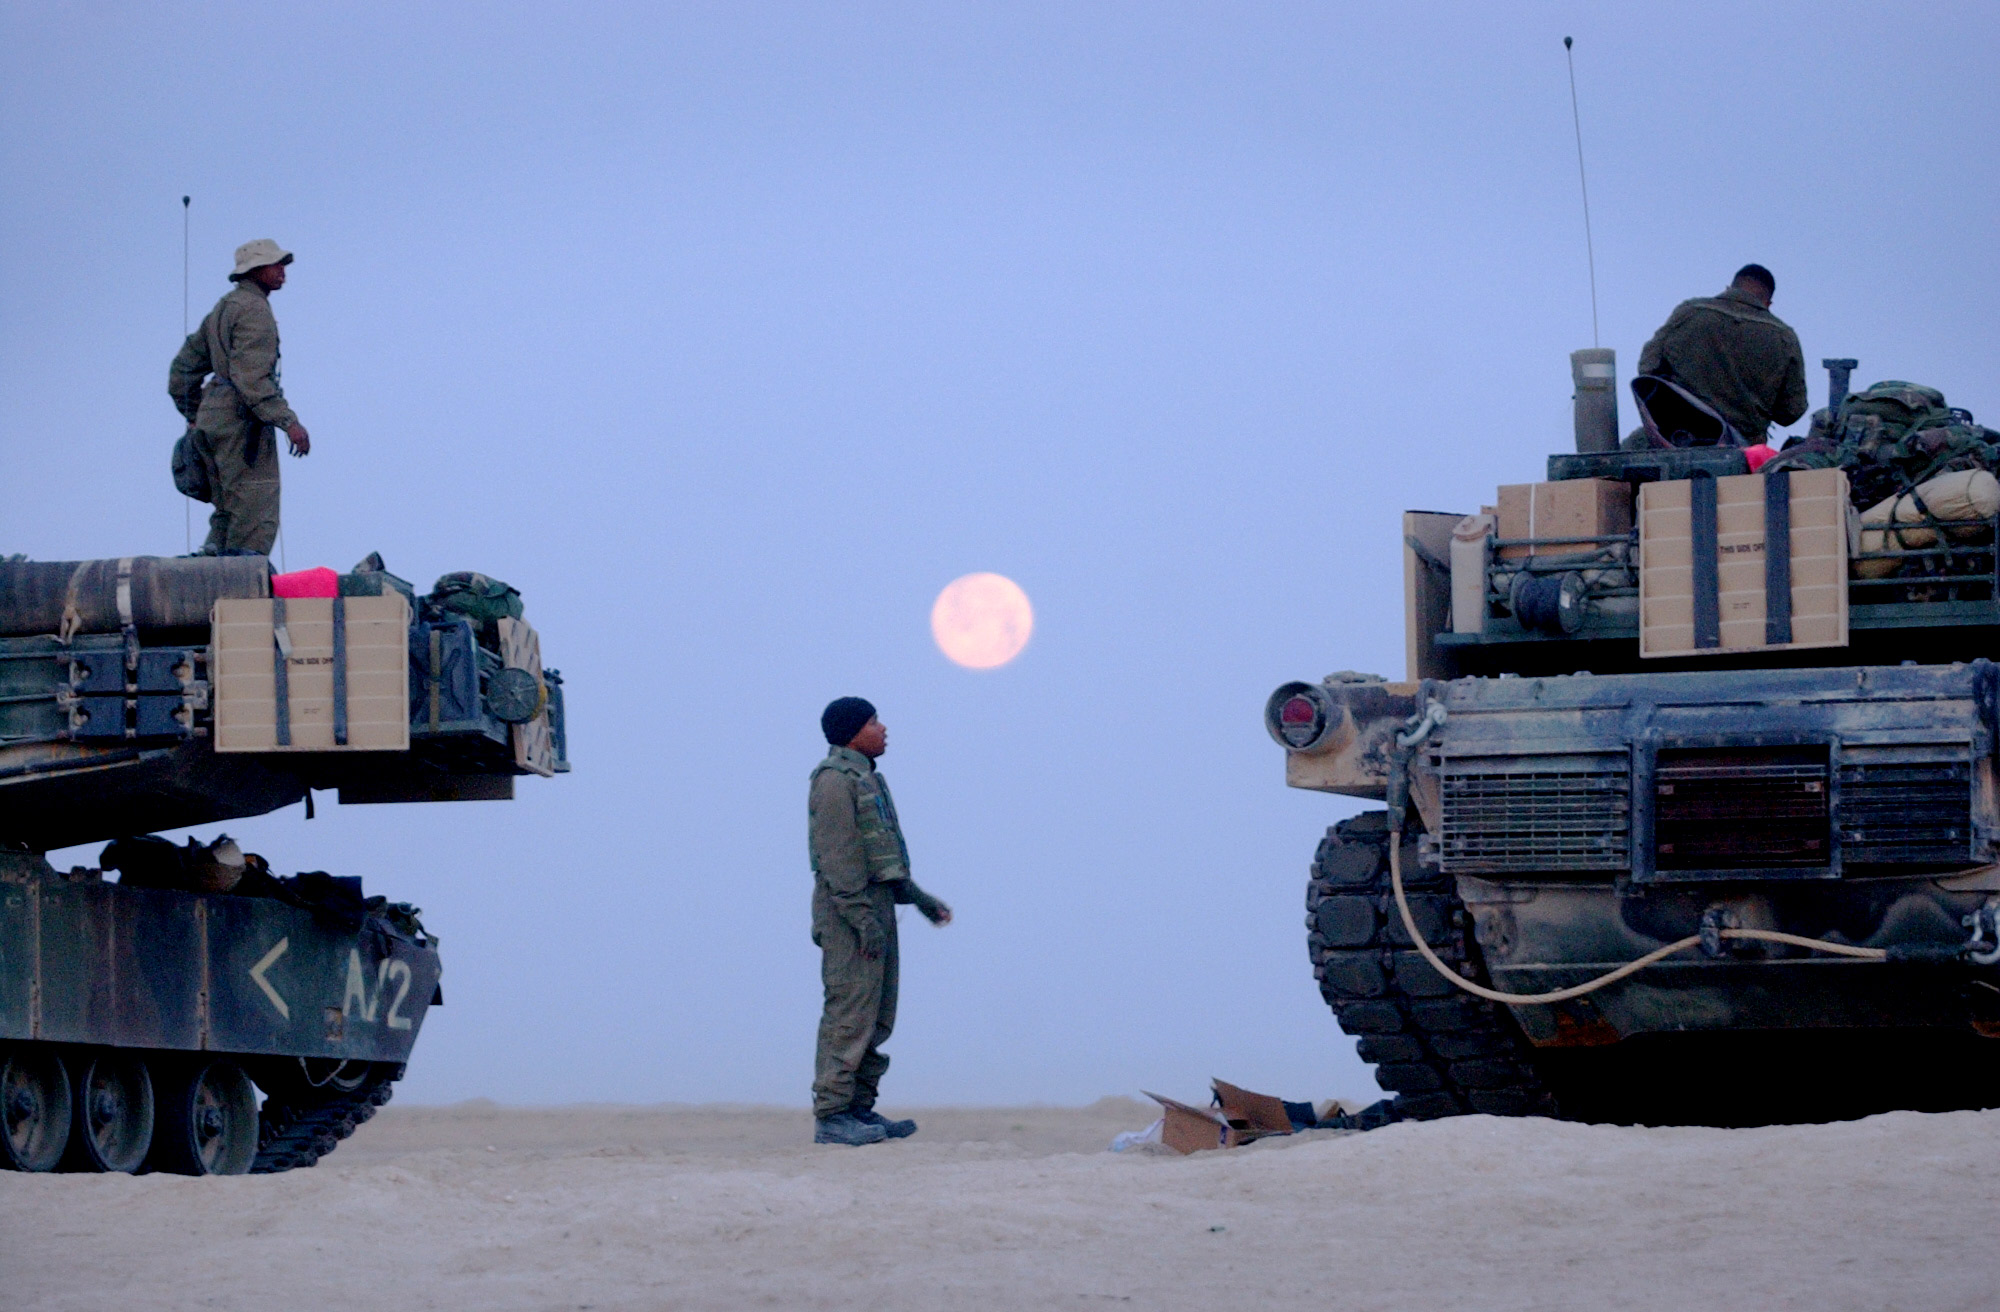 After hearing President George Bush's speech on the radio announcing the launch of the war with Iraq, Marines from the Second Tank Battalion camped in Kuwait prepare before sunrise to move north to the southern border of Iraq in anticipation of the invasion on March 18, 2003.